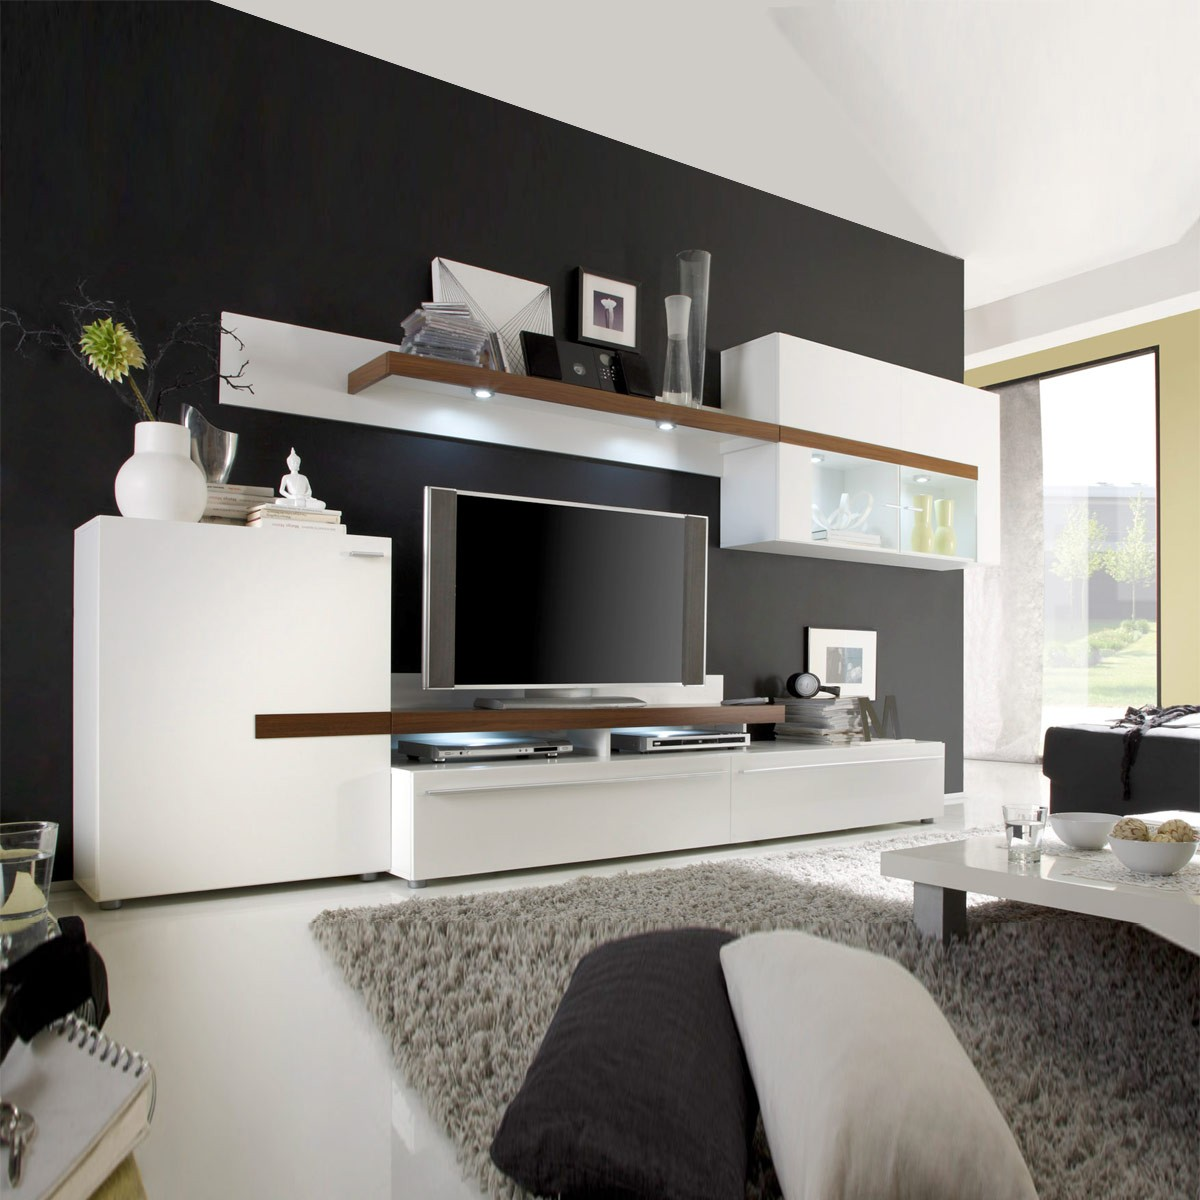 mercimek k ftesi tarifi wohnzimmereinrichtungen modern. Black Bedroom Furniture Sets. Home Design Ideas